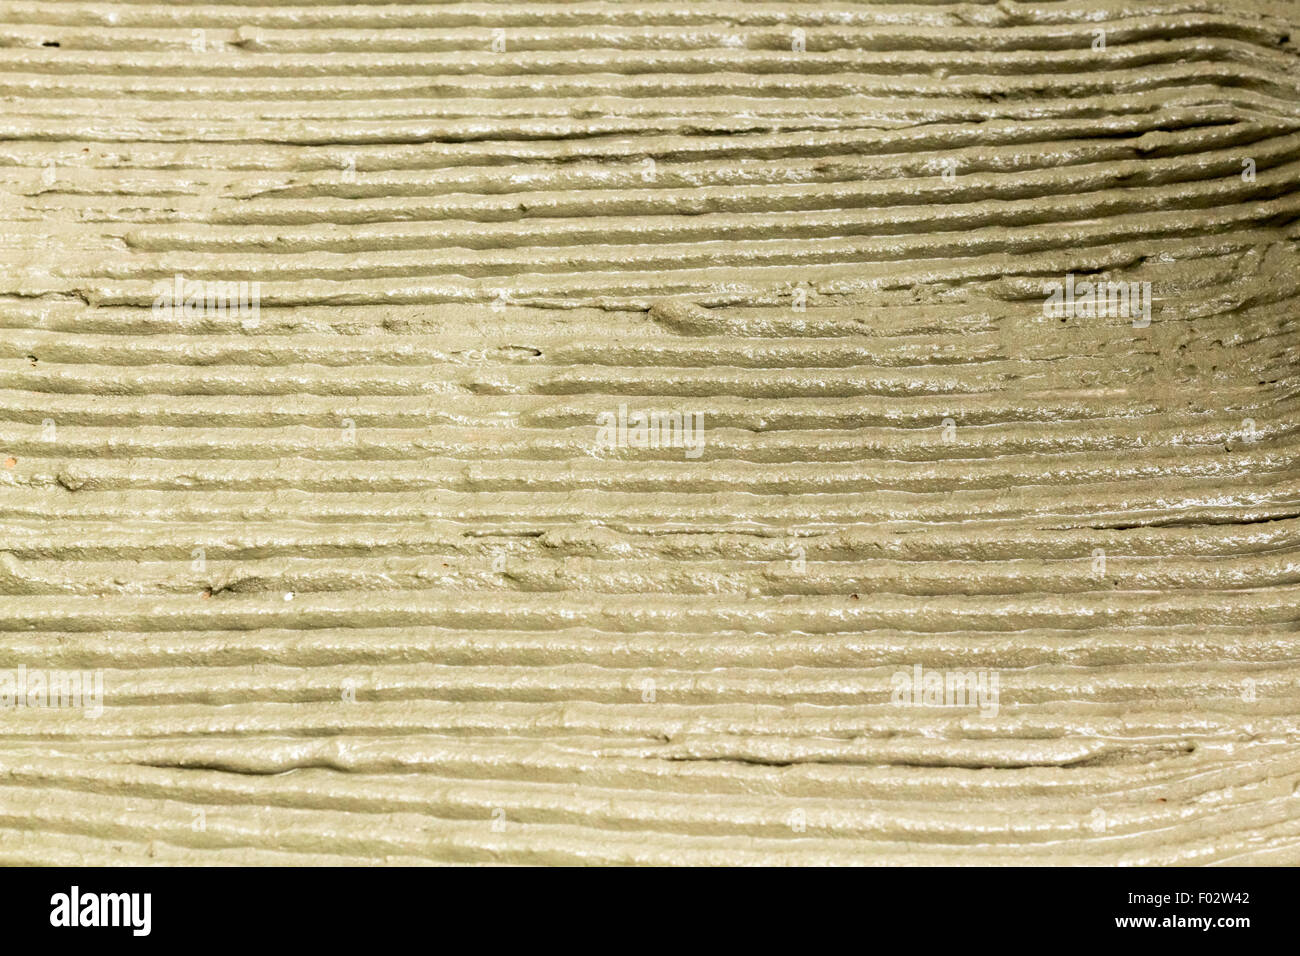 Tile Adhesive Stock Photos & Tile Adhesive Stock Images - Alamy